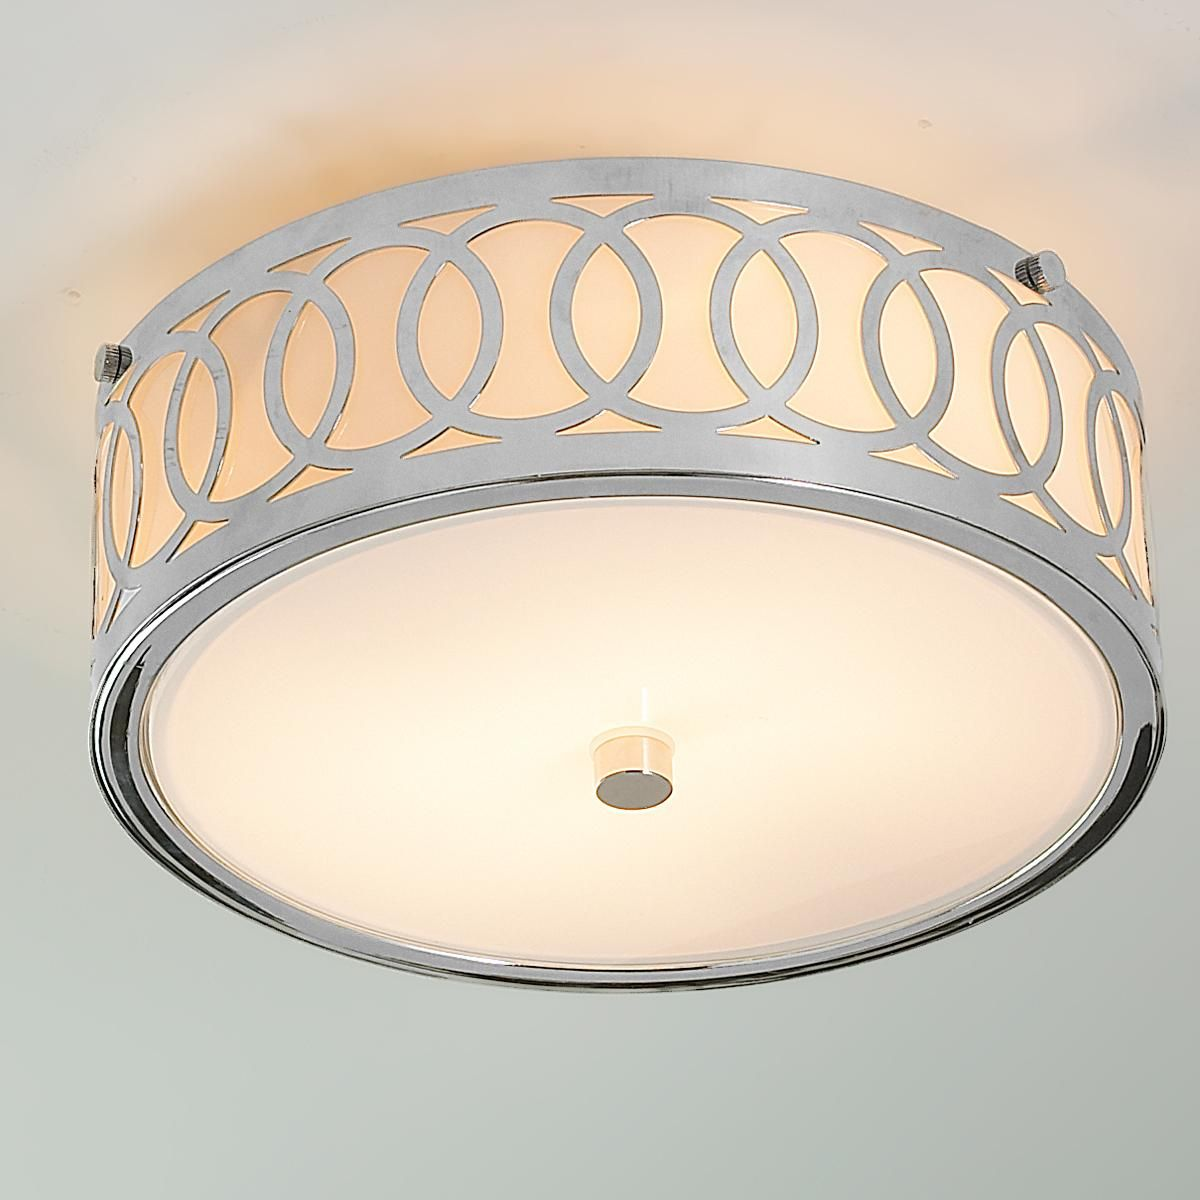 Small Interlocking Rings Flush Mount Ceiling Light Flush Mount Ceiling Lights Ceiling Lights Flush Ceiling Lights